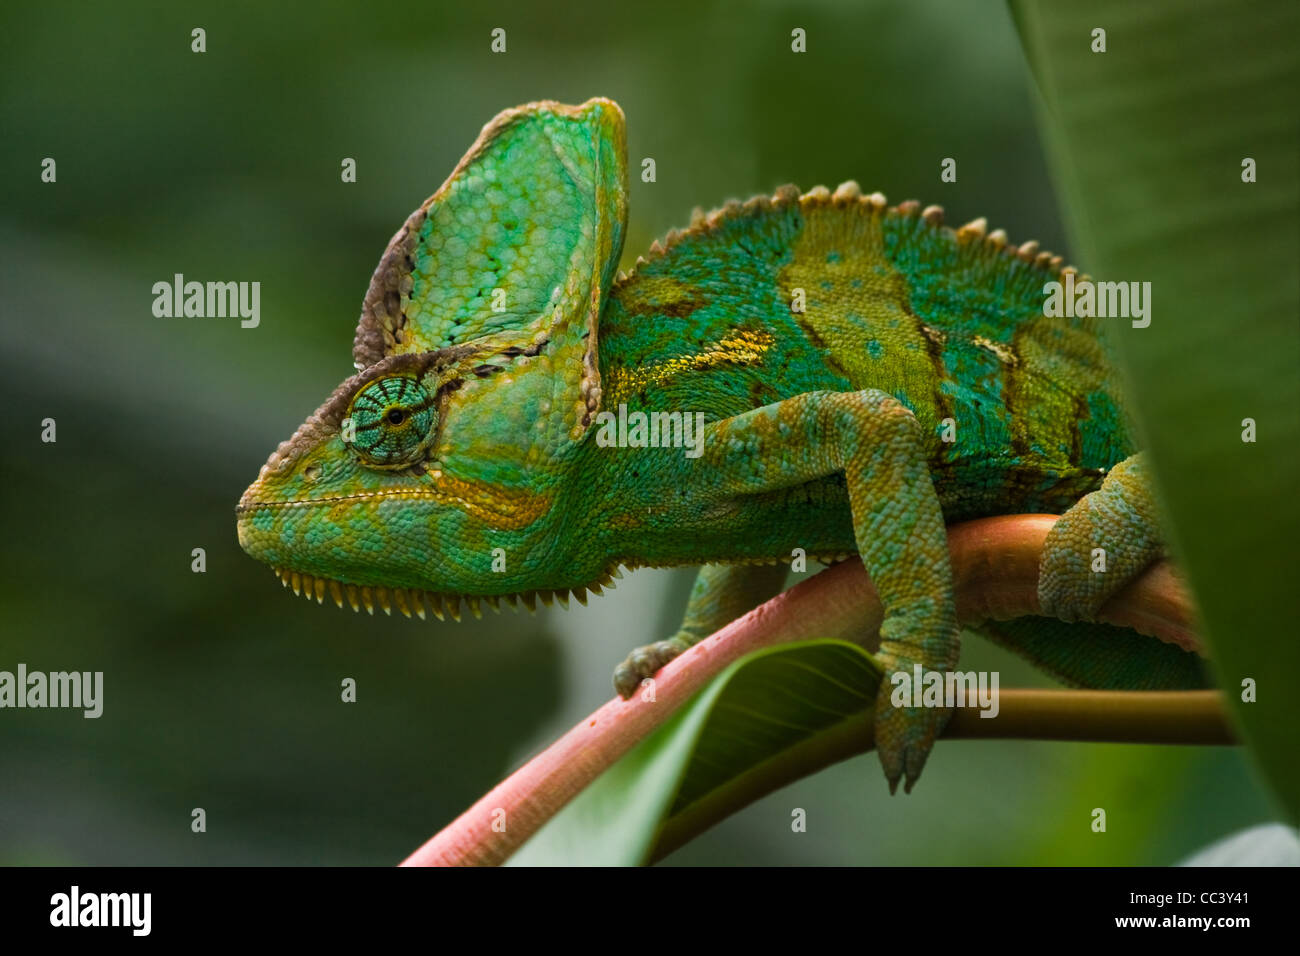 Beauitiful green Jemen chameleon or Chamaelio calyptratus climbing a branch and looking around - Stock Image